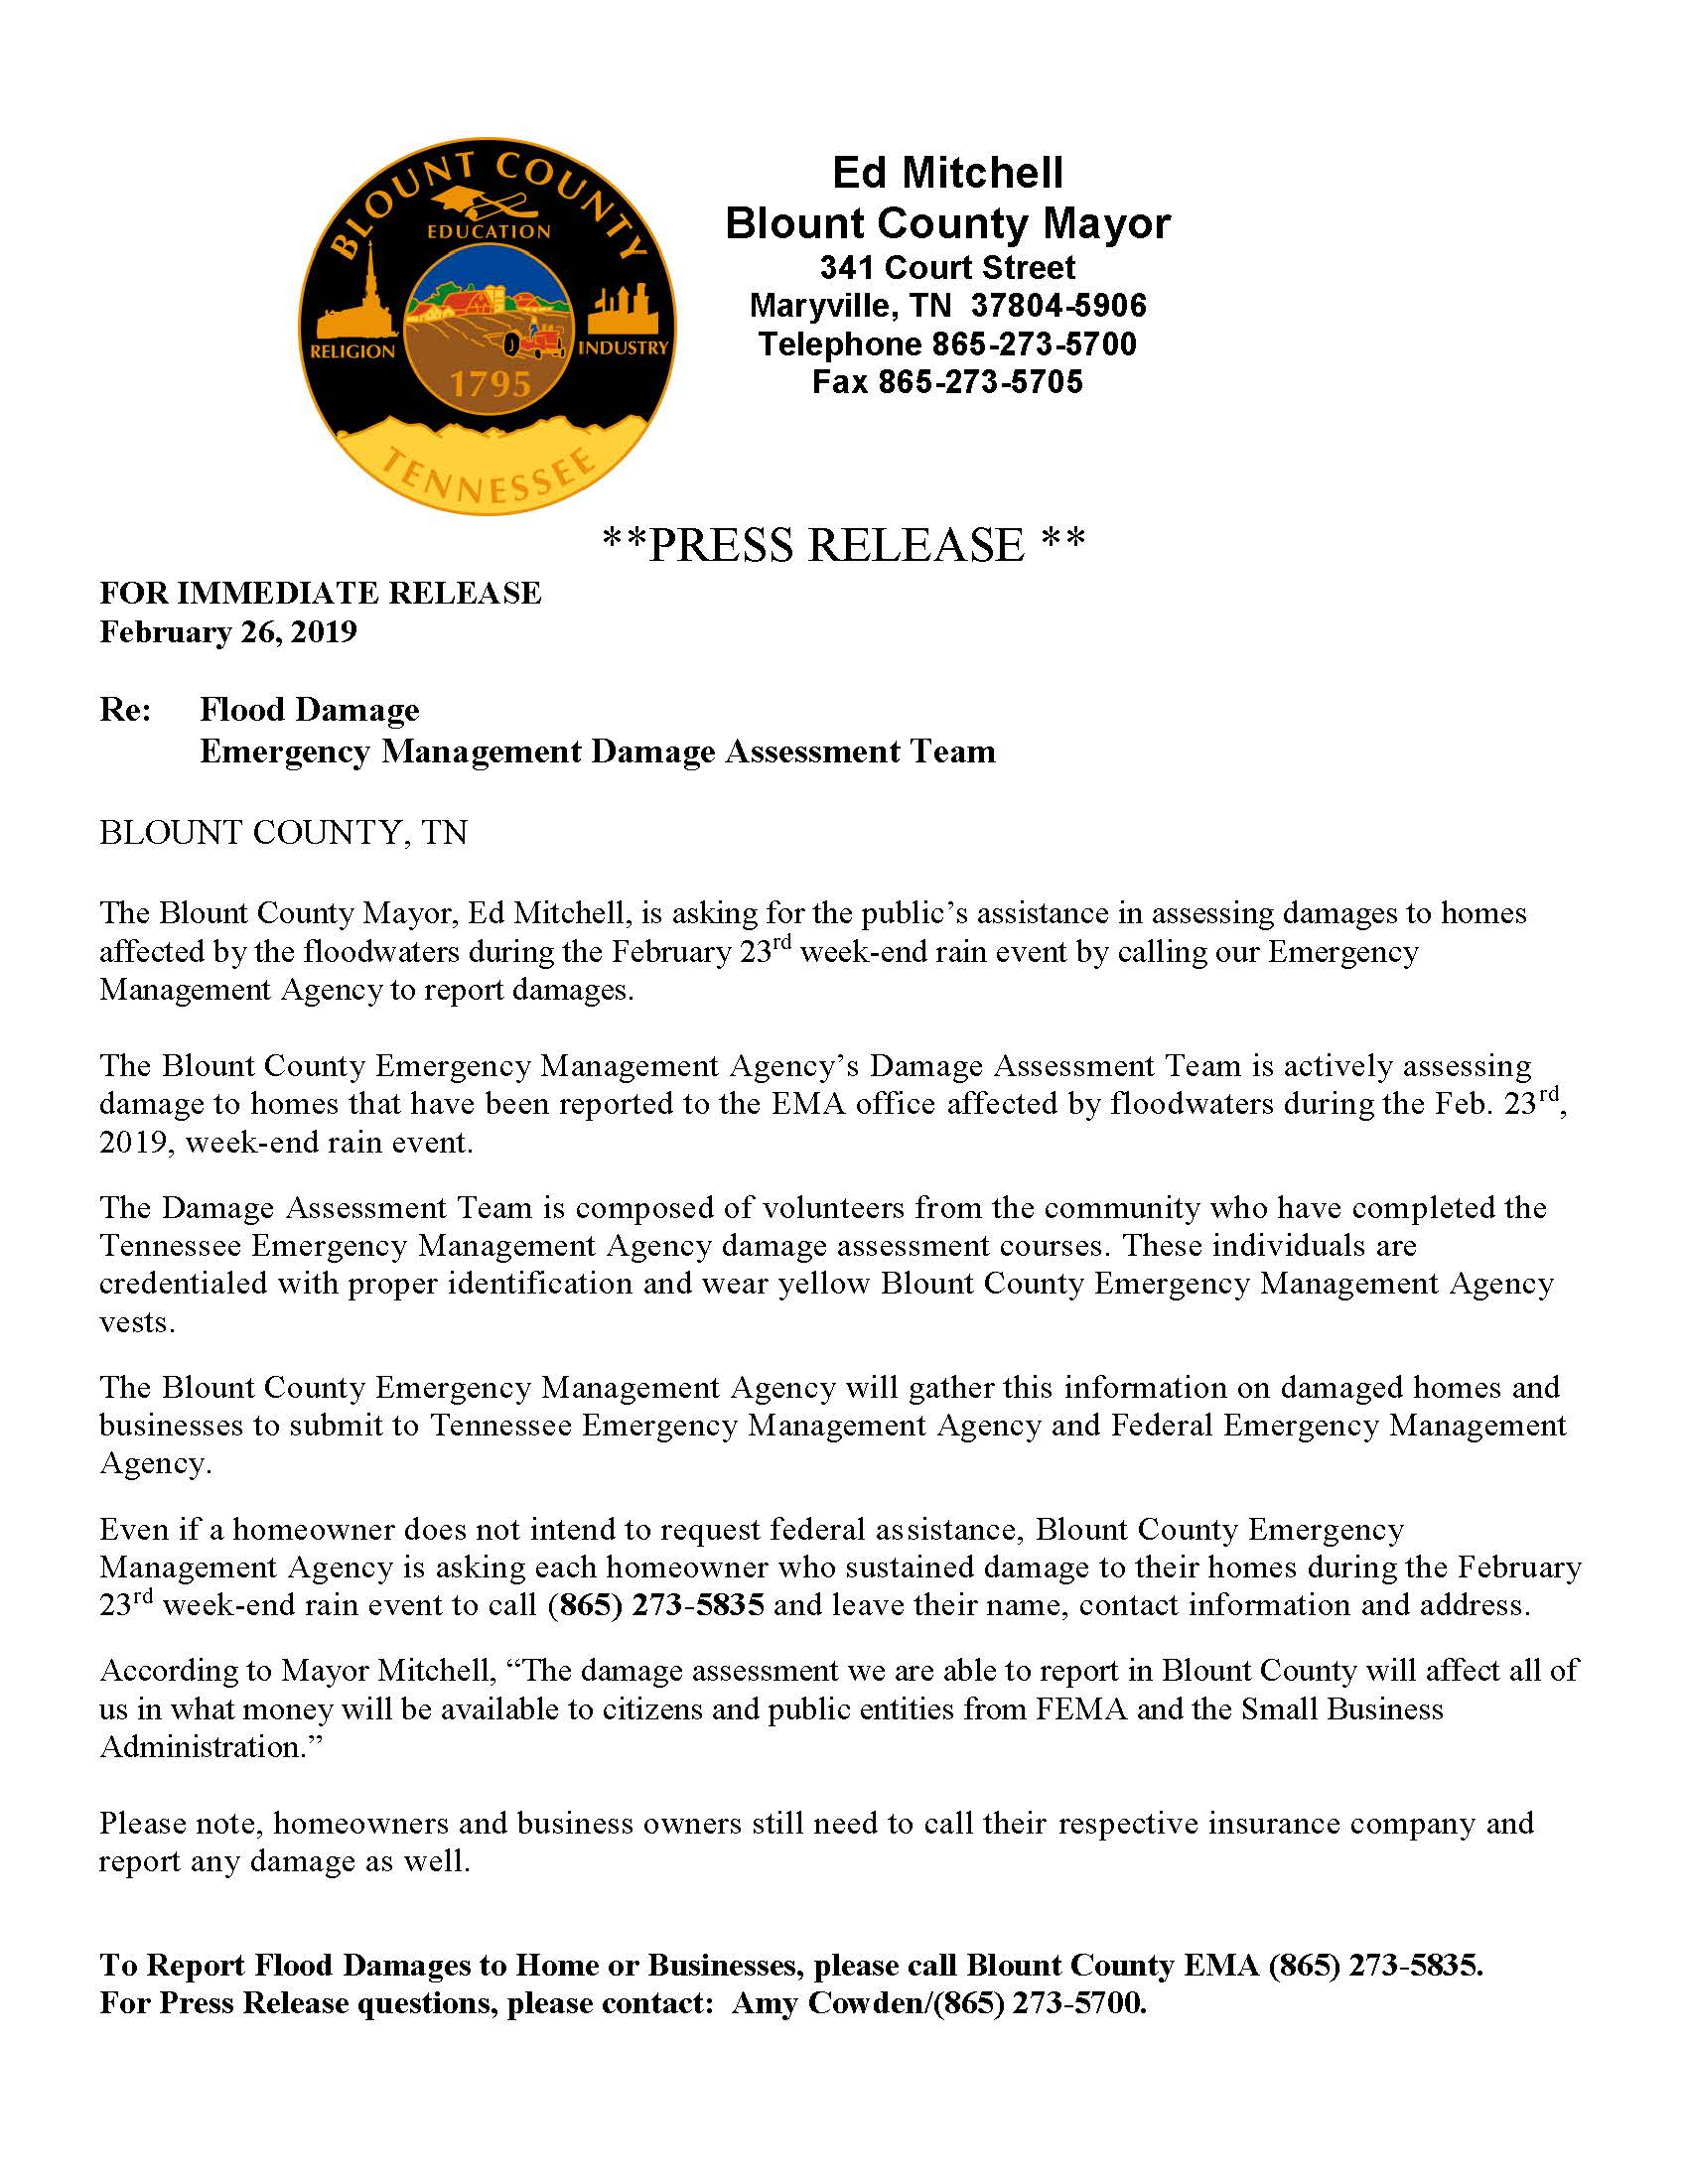 Press Release - Damage Assessment Team 2.26.19